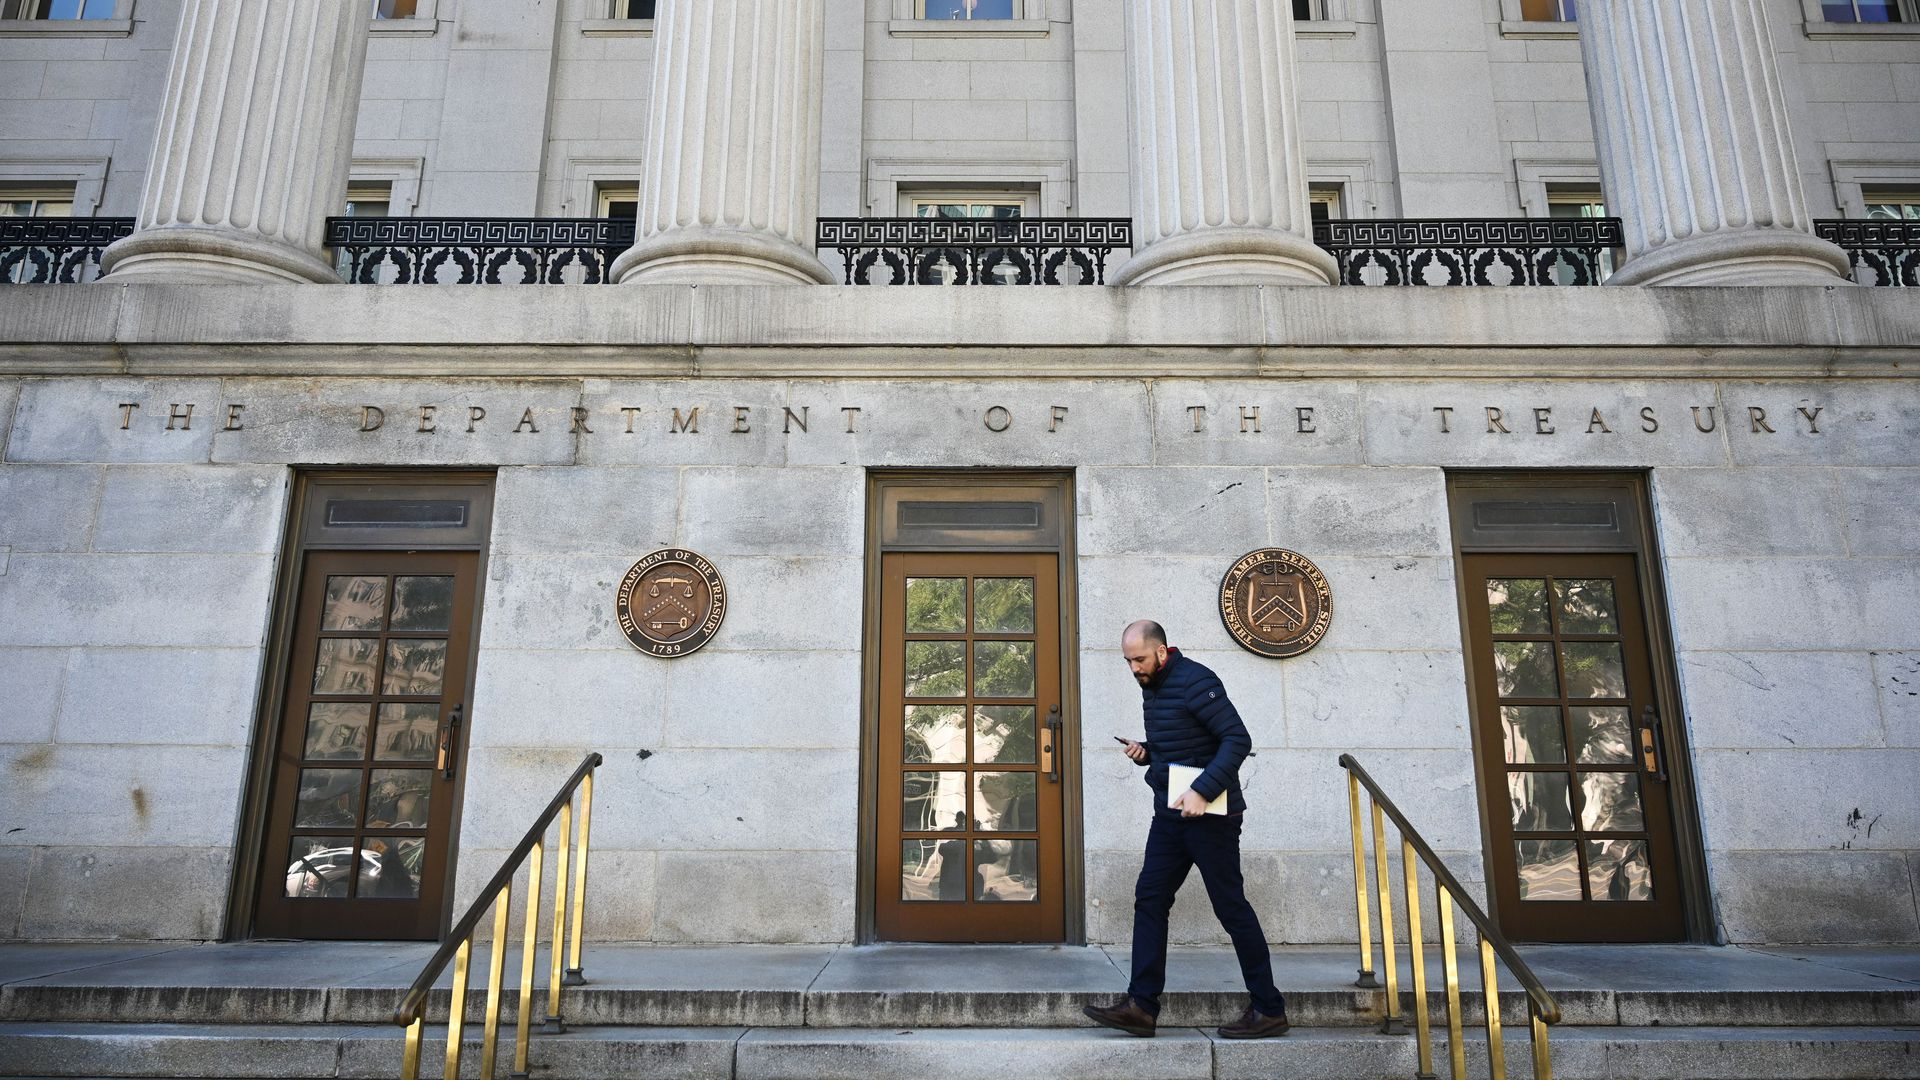 In this image, a man carrying a file walks down the front steps of the Department of Treasury building.